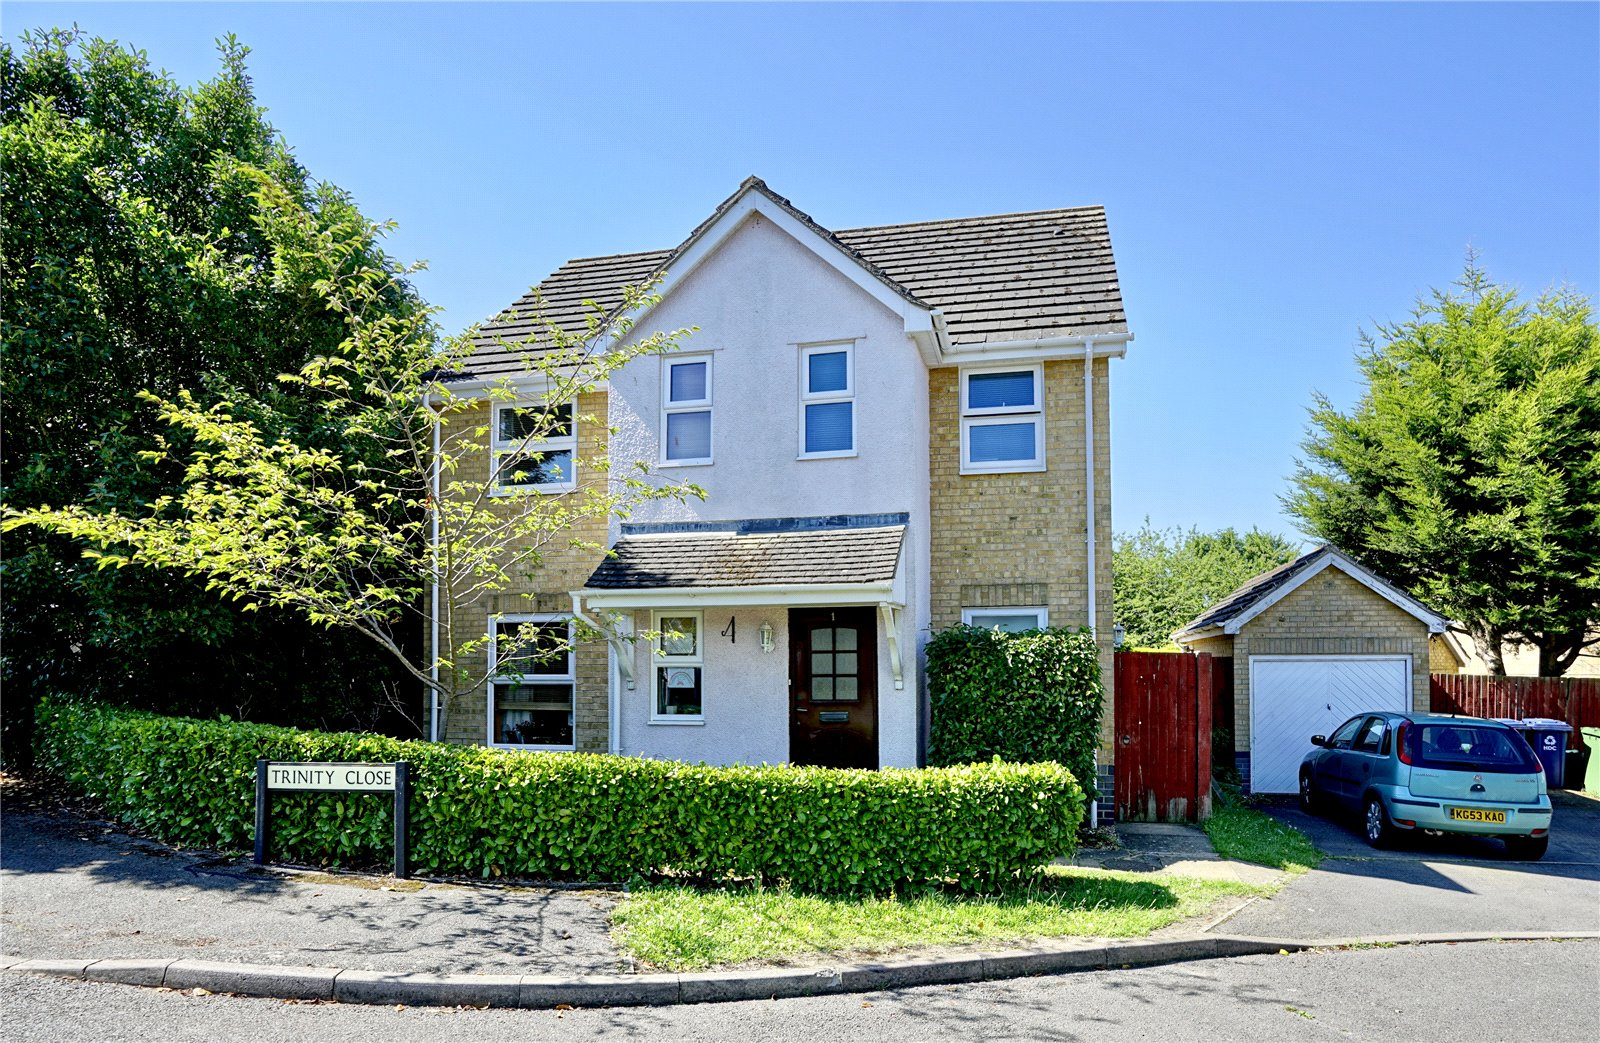 4 bed house for sale in Great Paxton, Trinity Close, PE19 6YL  - Property Image 1